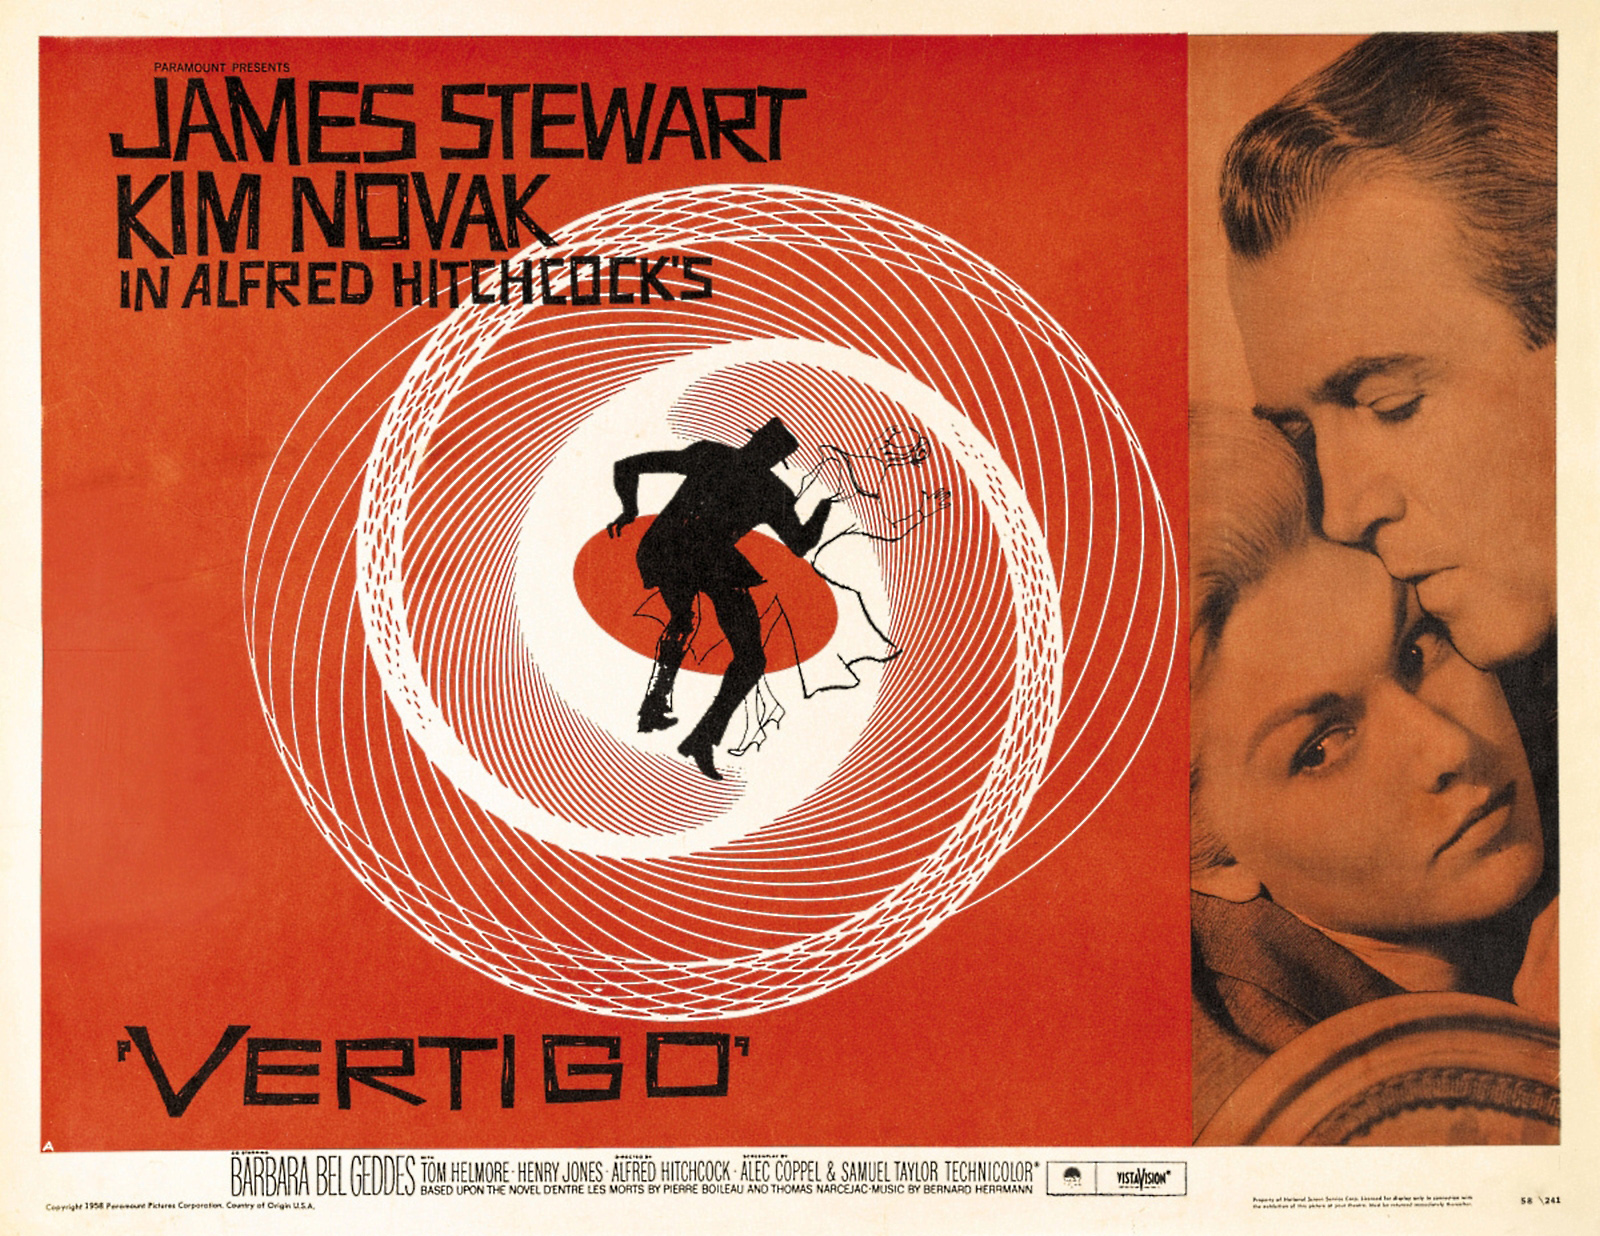 """critical analysis of alfred hitchcock's rear A brief analysis of the working methodologies of alfred hitchcock and  and its  meaning, from point of view, editing, character, and narrative structure as a whole   in """"rear window"""" this is made most literal – where the viewer's perspective is ."""